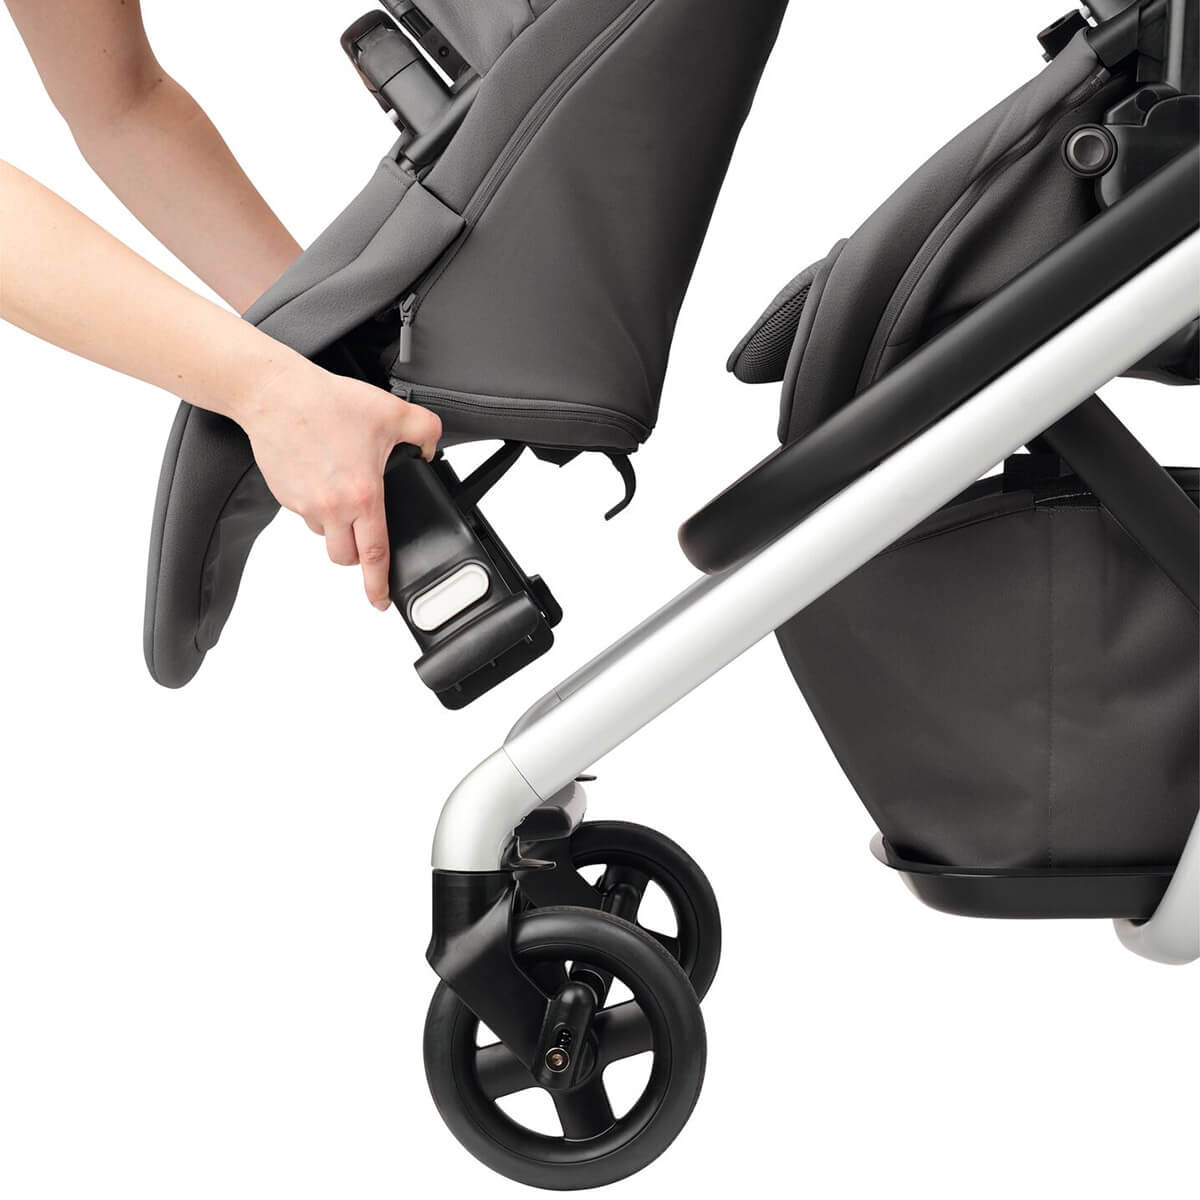 Simply slide the Maxi-Cosi Lila baby pram second child seat on the front of the stroller frame